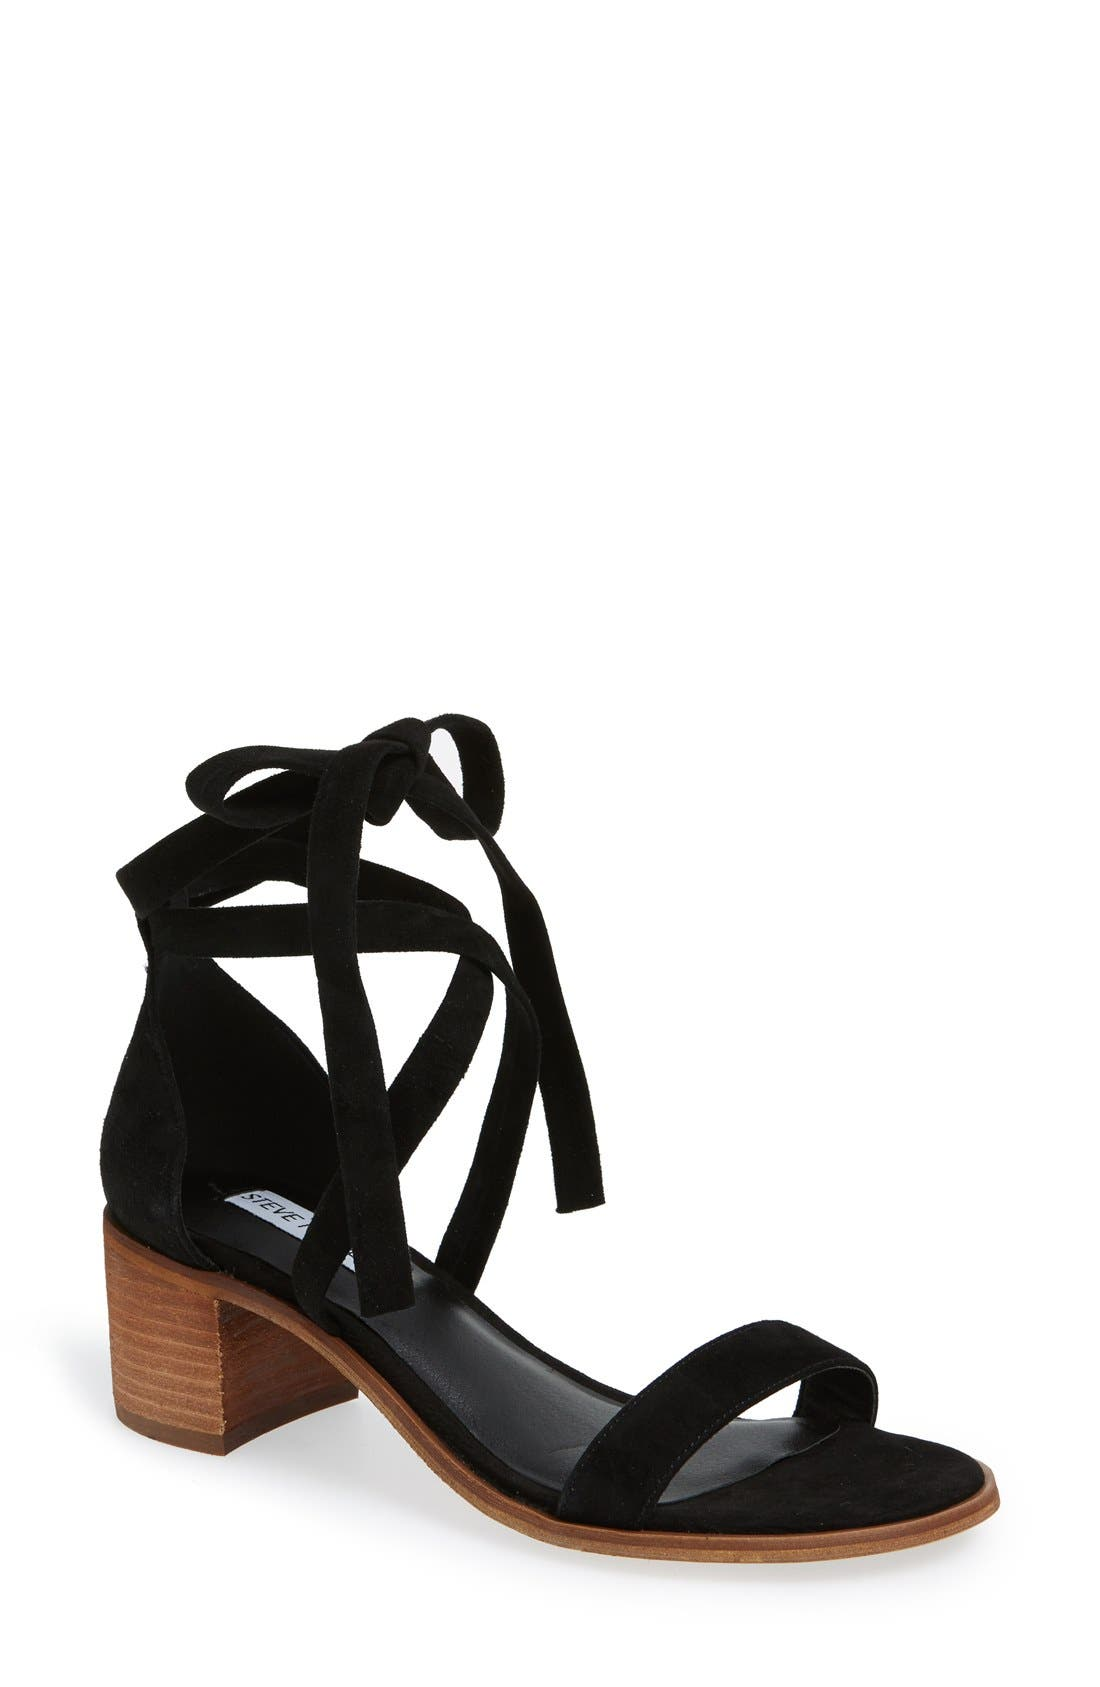 STEVE MADDEN 'Rizzaa' Ankle Strap Sandal